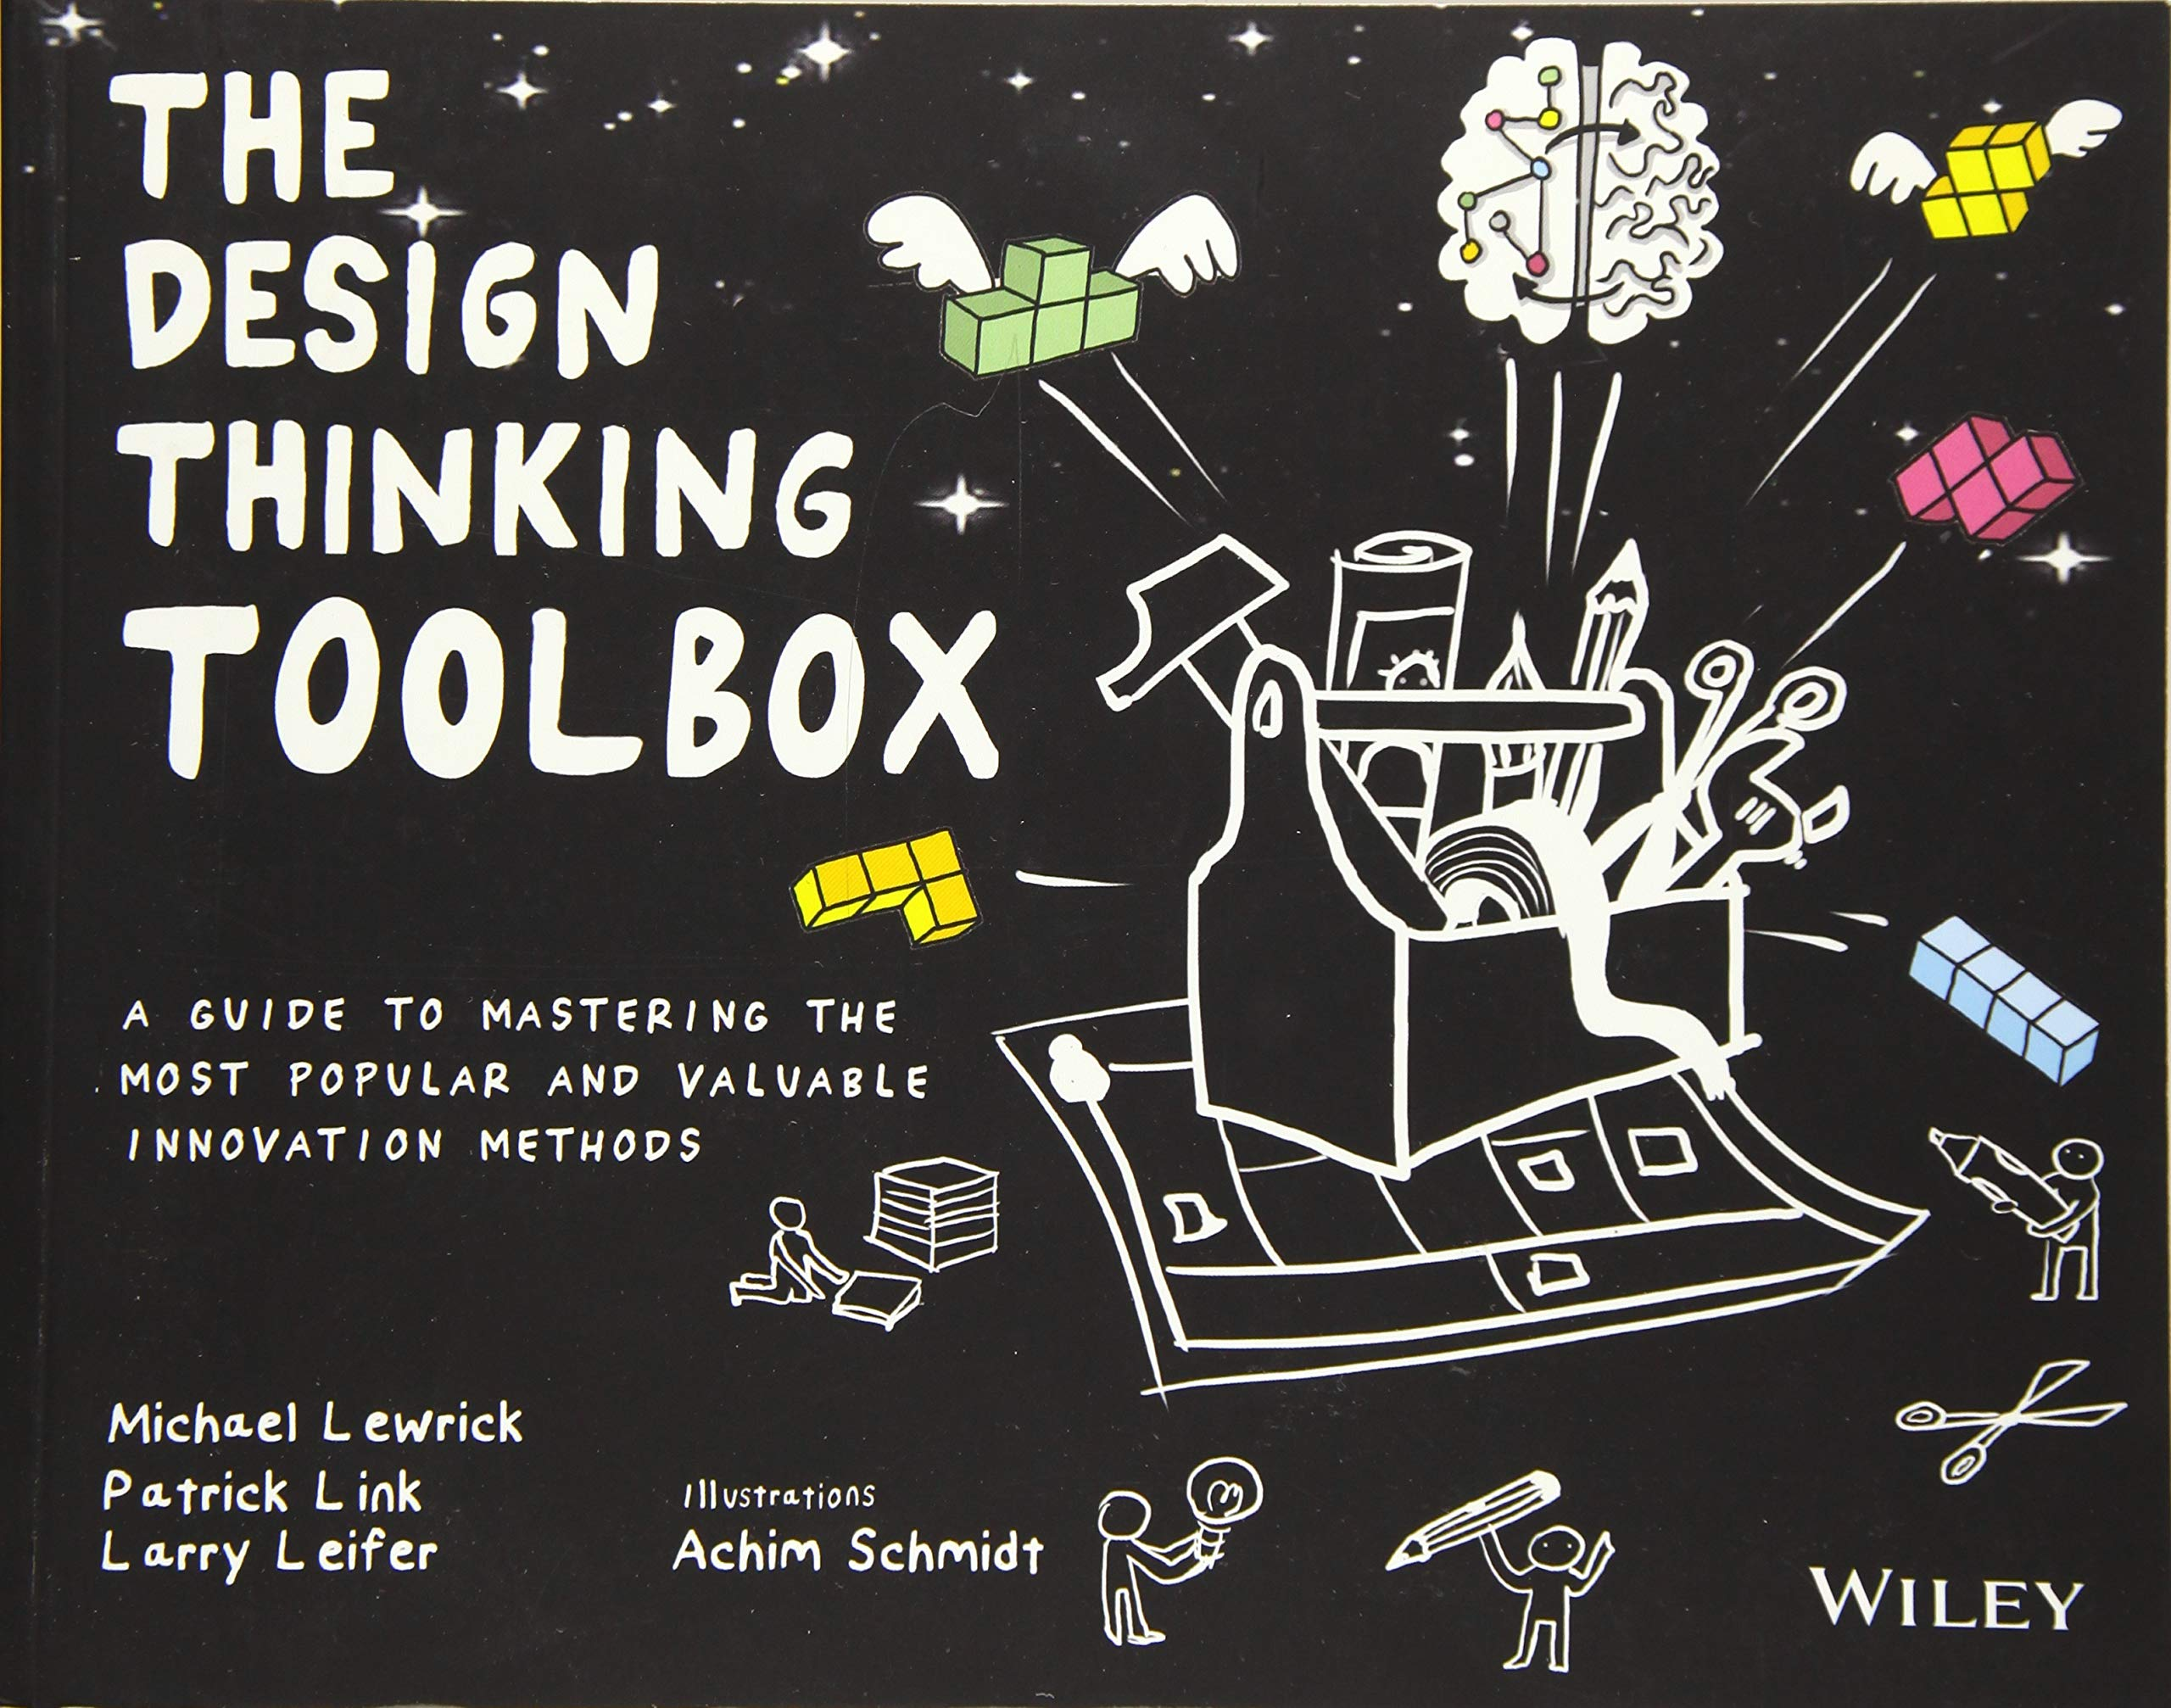 design thinking toolbox book cover